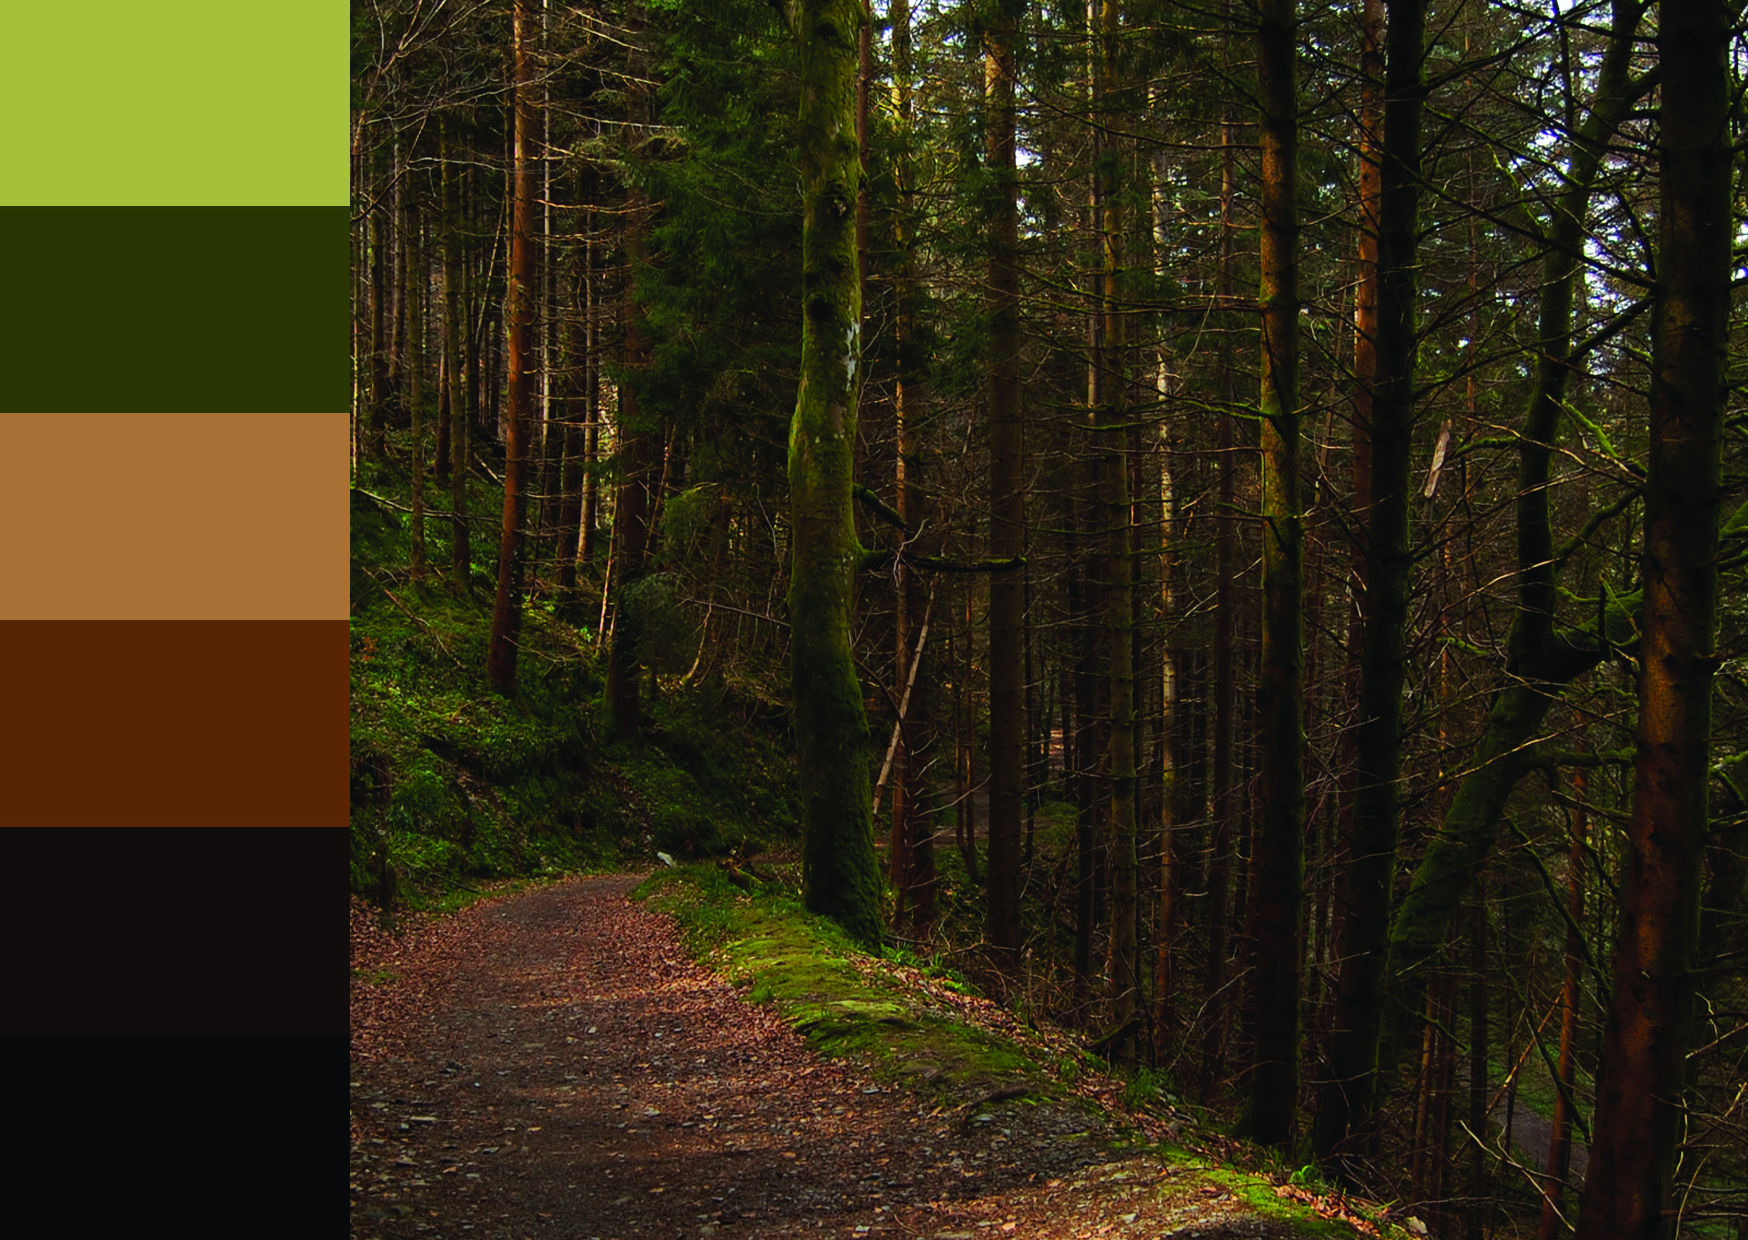 Paula Barrett, Colour Samples: Ireland: Devil's Glen